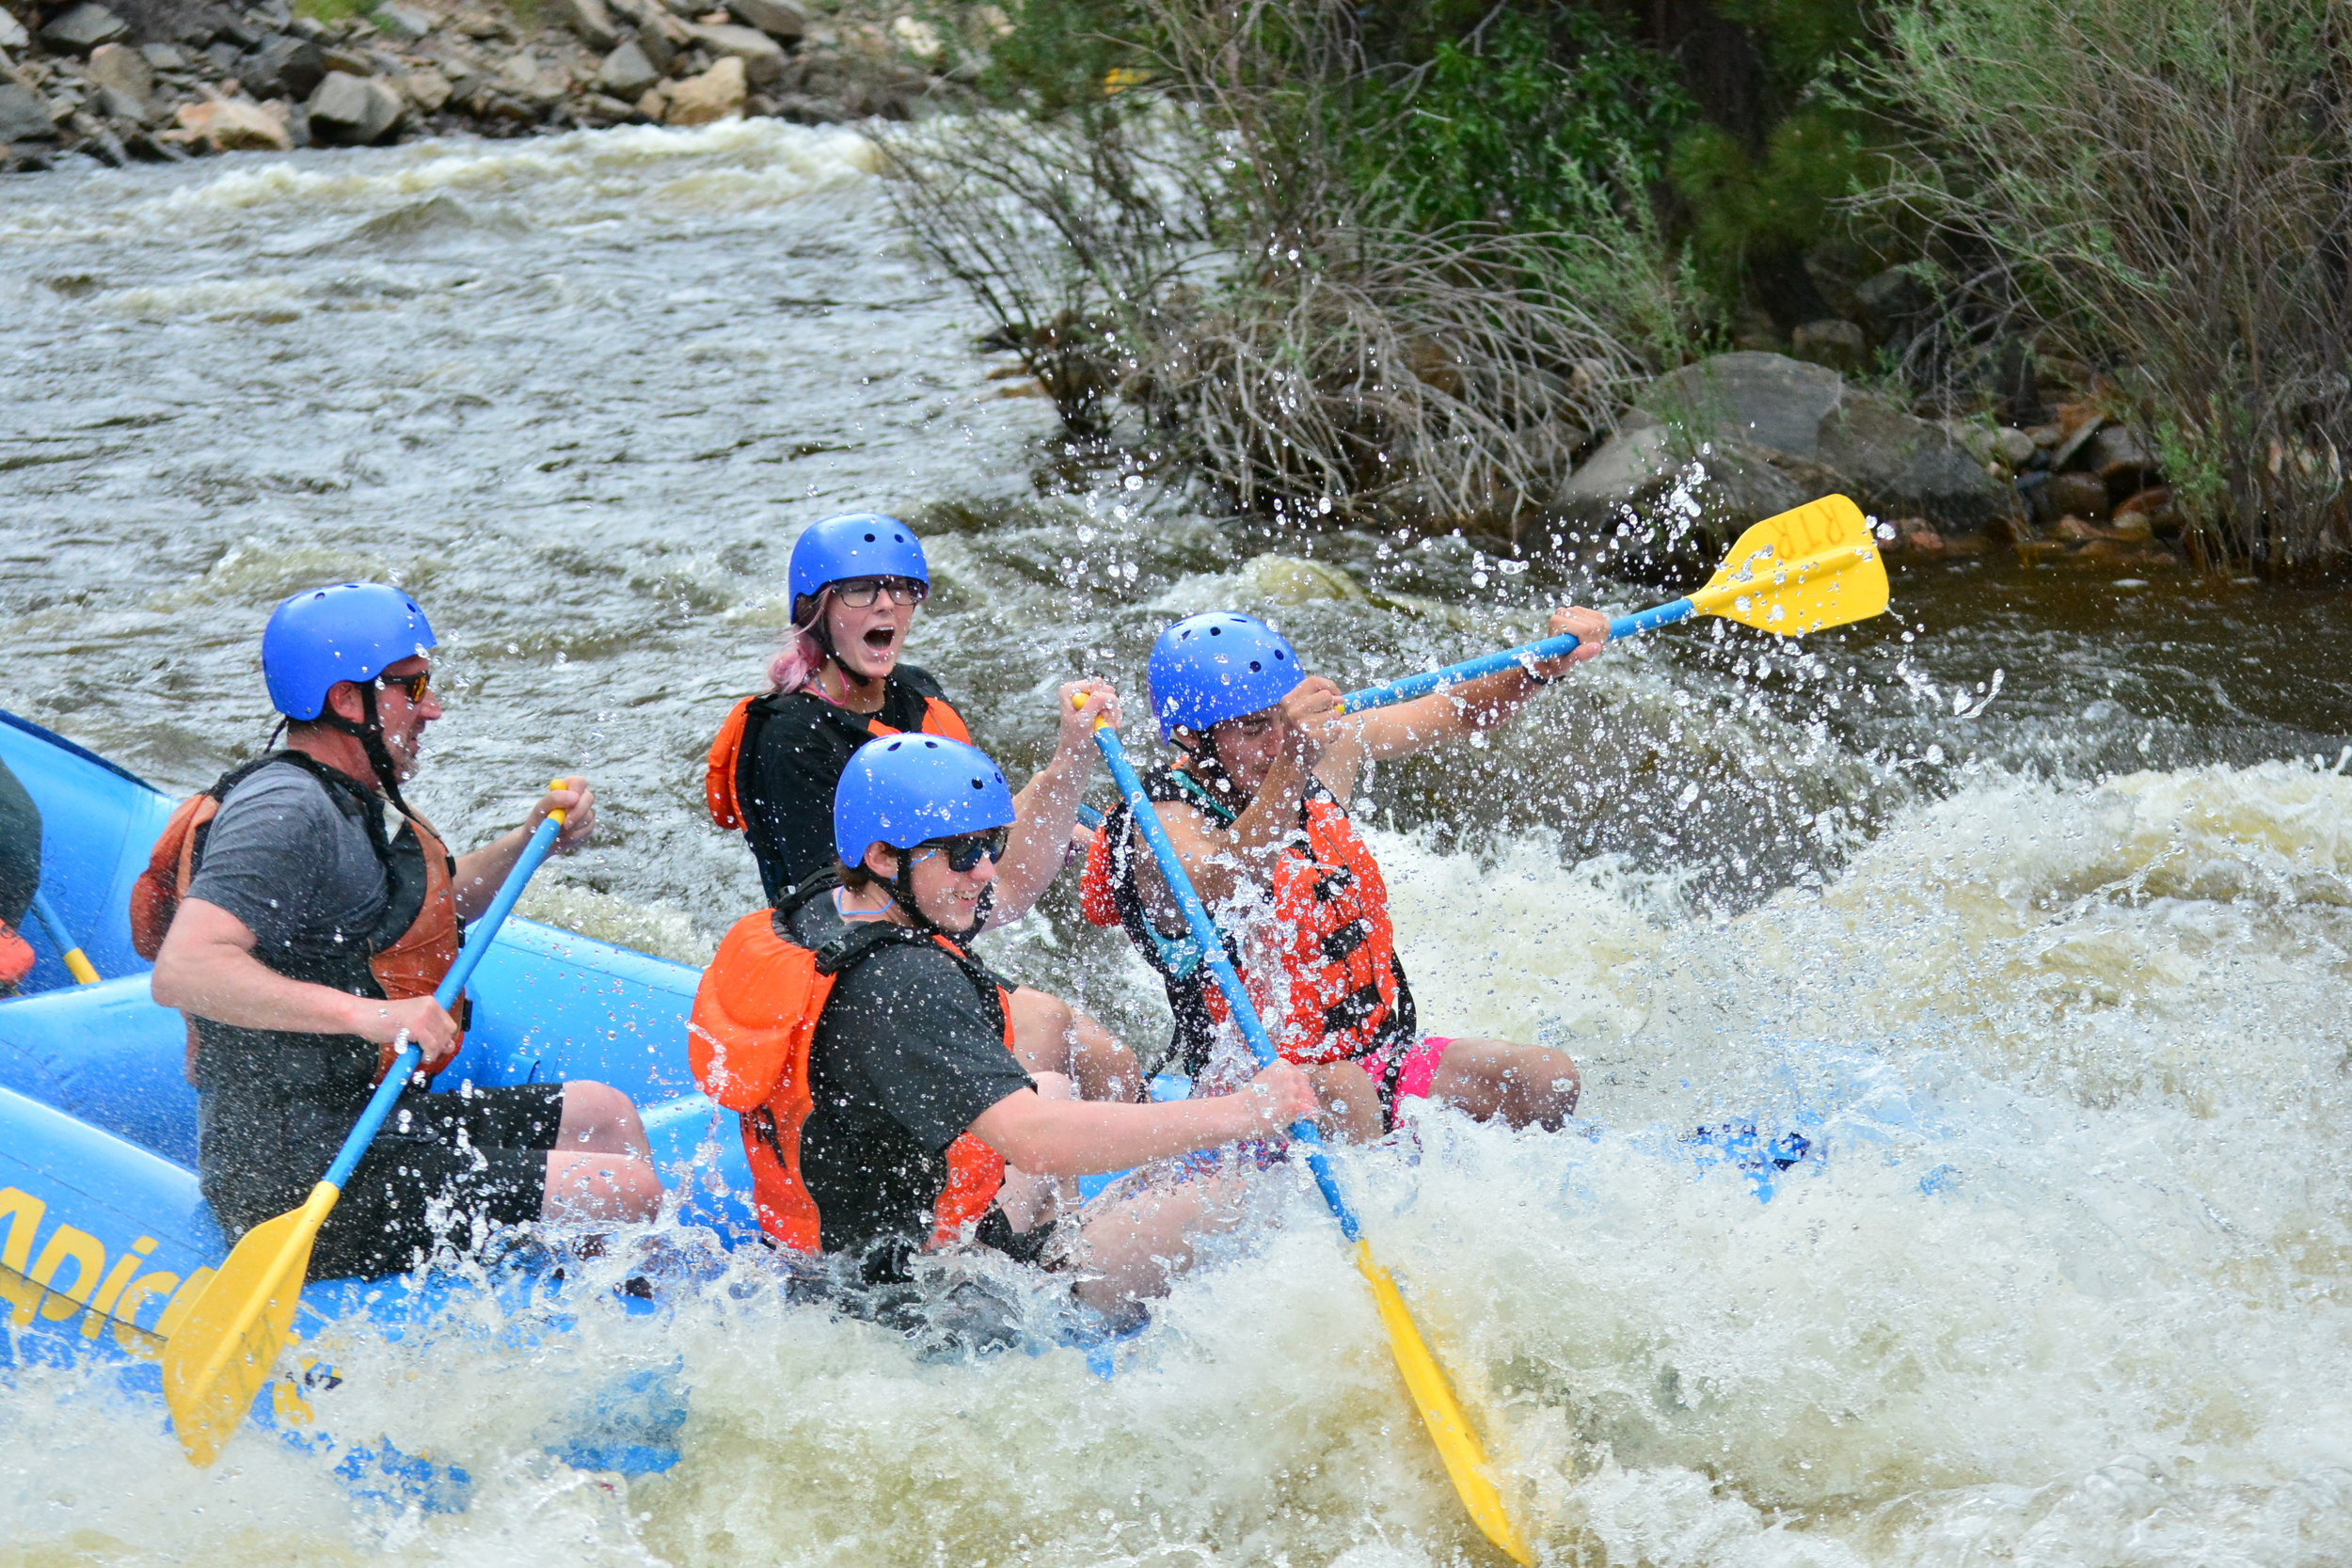 photographer - Capture images of people having the time of their lives rafting with us.